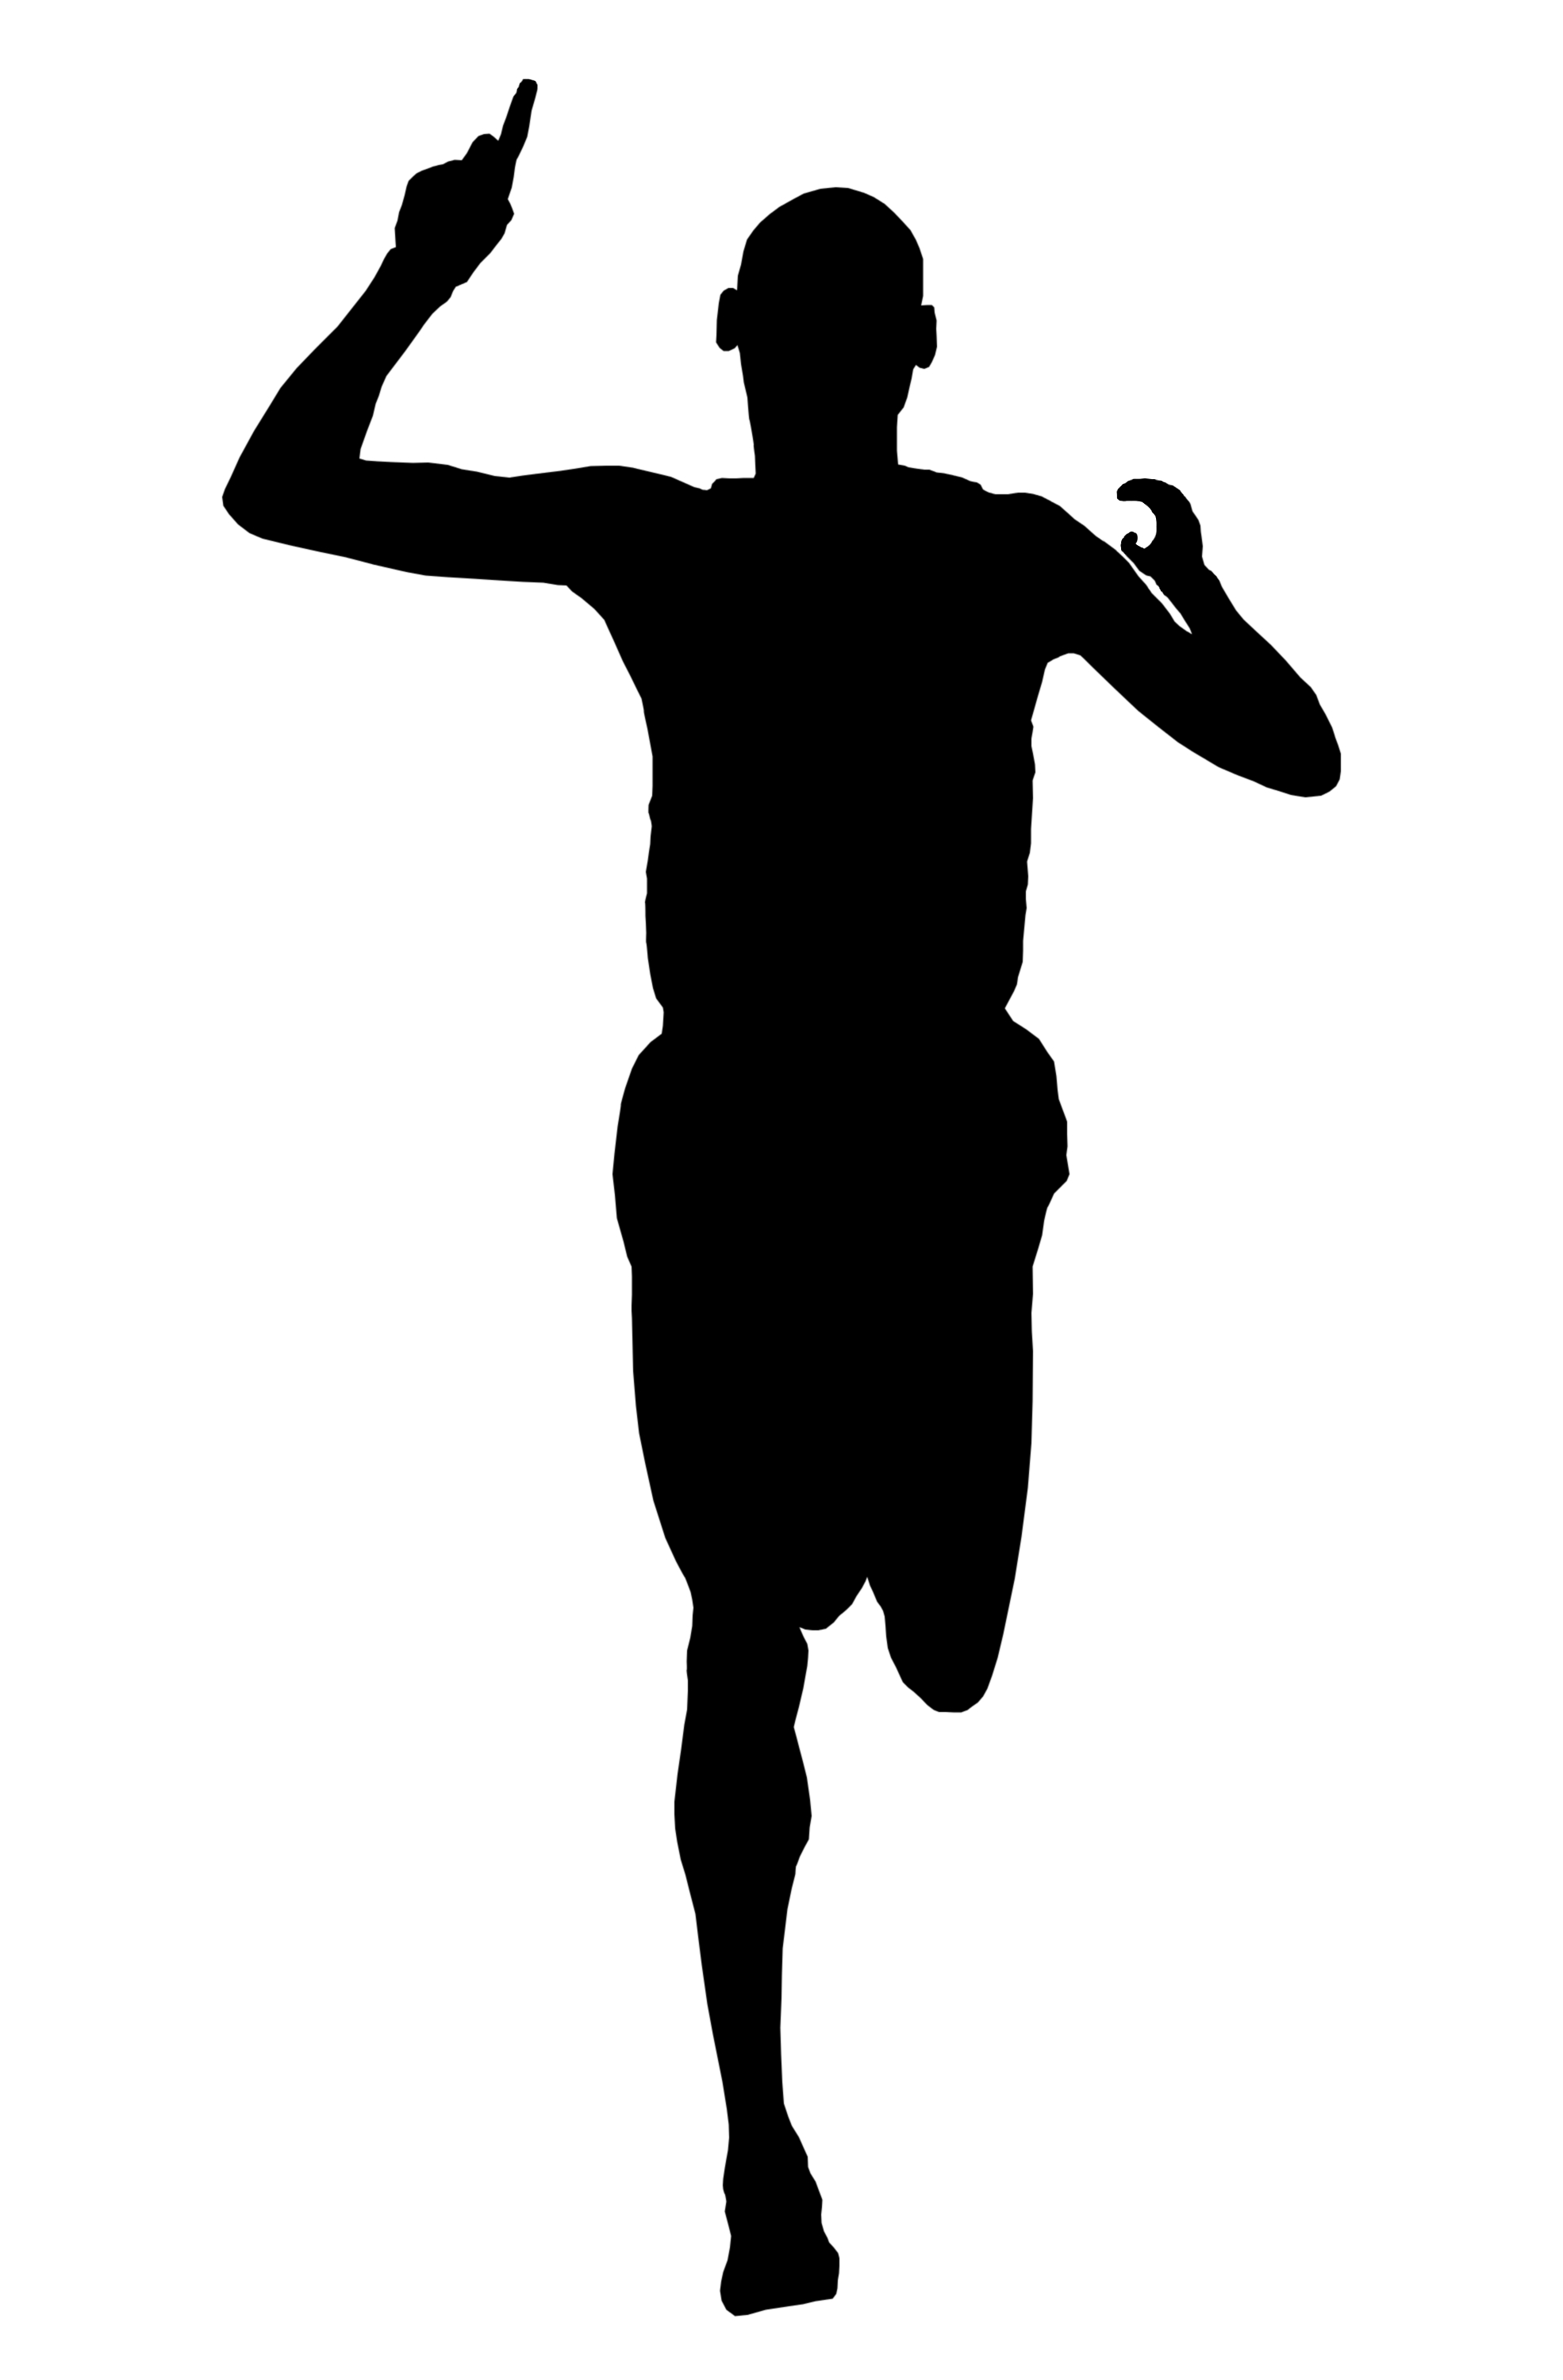 Man Running Silhouette Vector Free